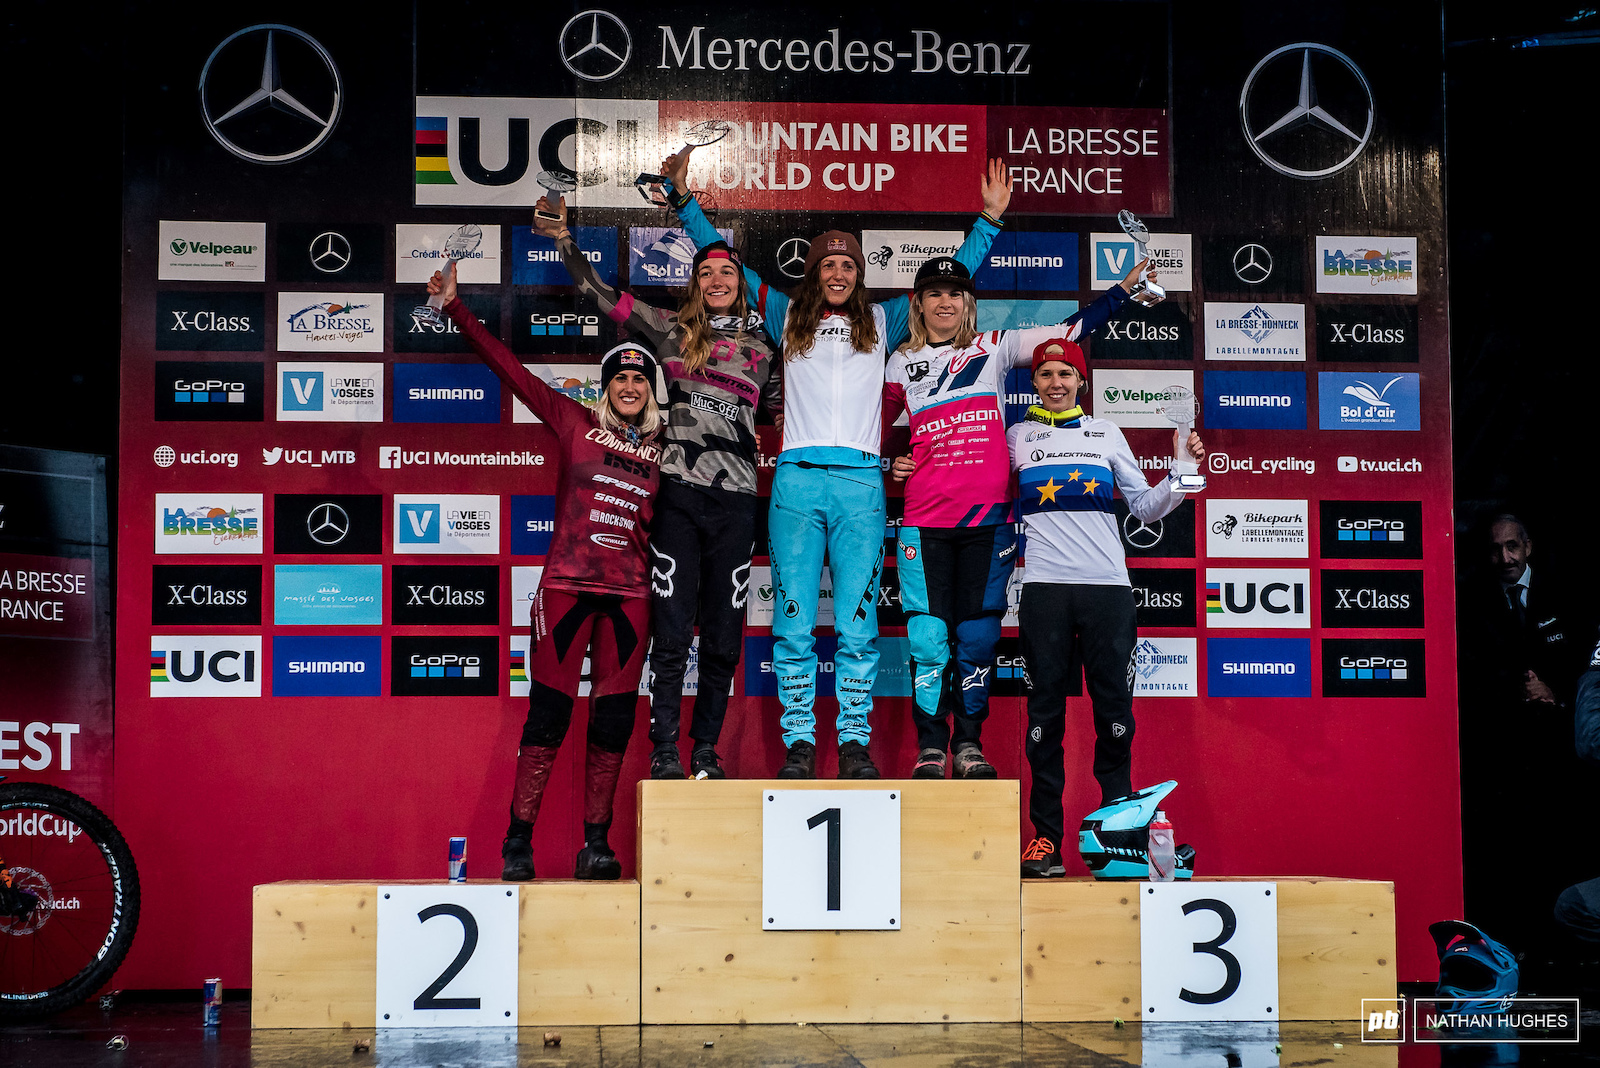 Fastest women in the Wolrd 2018 Atherton Seagrave Hannah Nicole and Hrastnik.